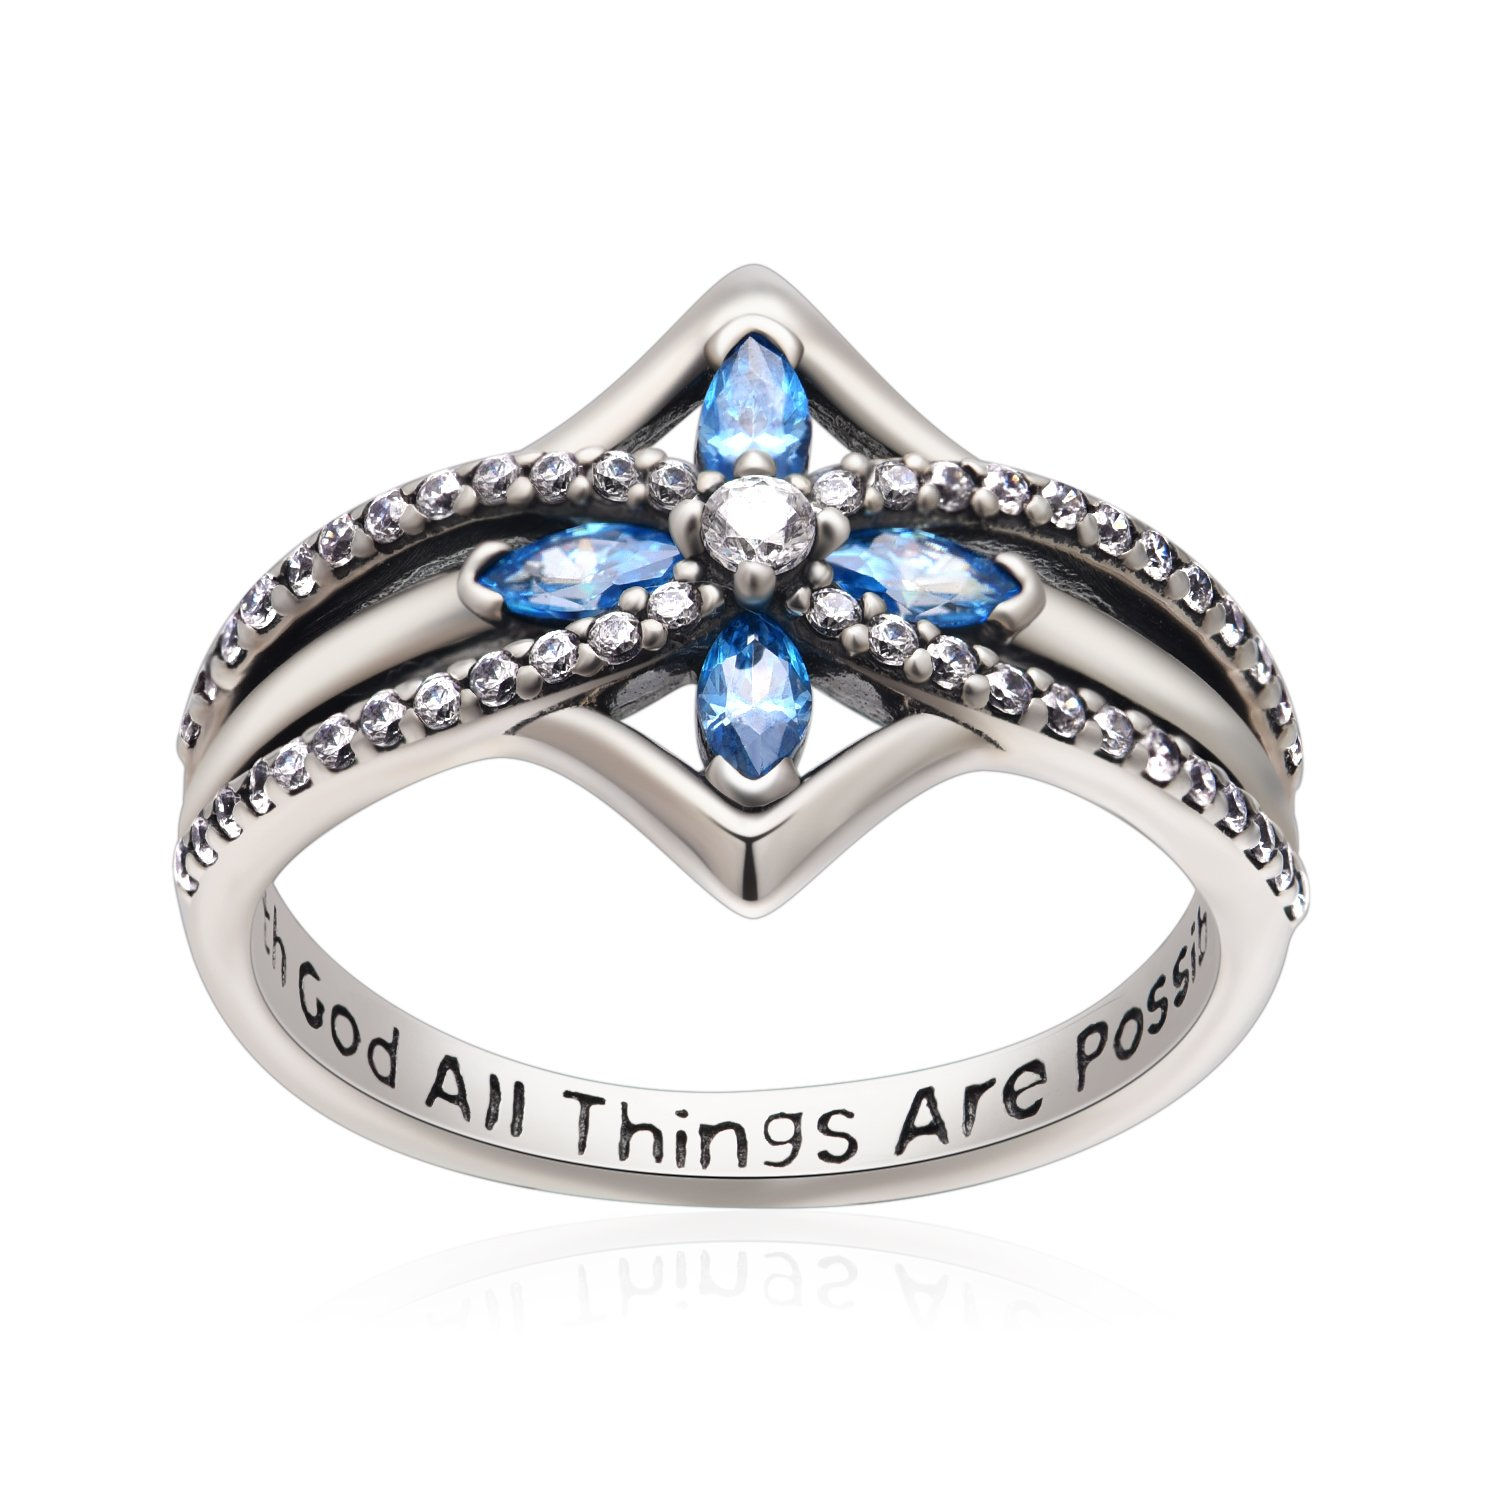 YFN Cross Ring Vintage Tone Sterling Silver with God All Things are Possible CZ Band Rings Size 7-8 (7)